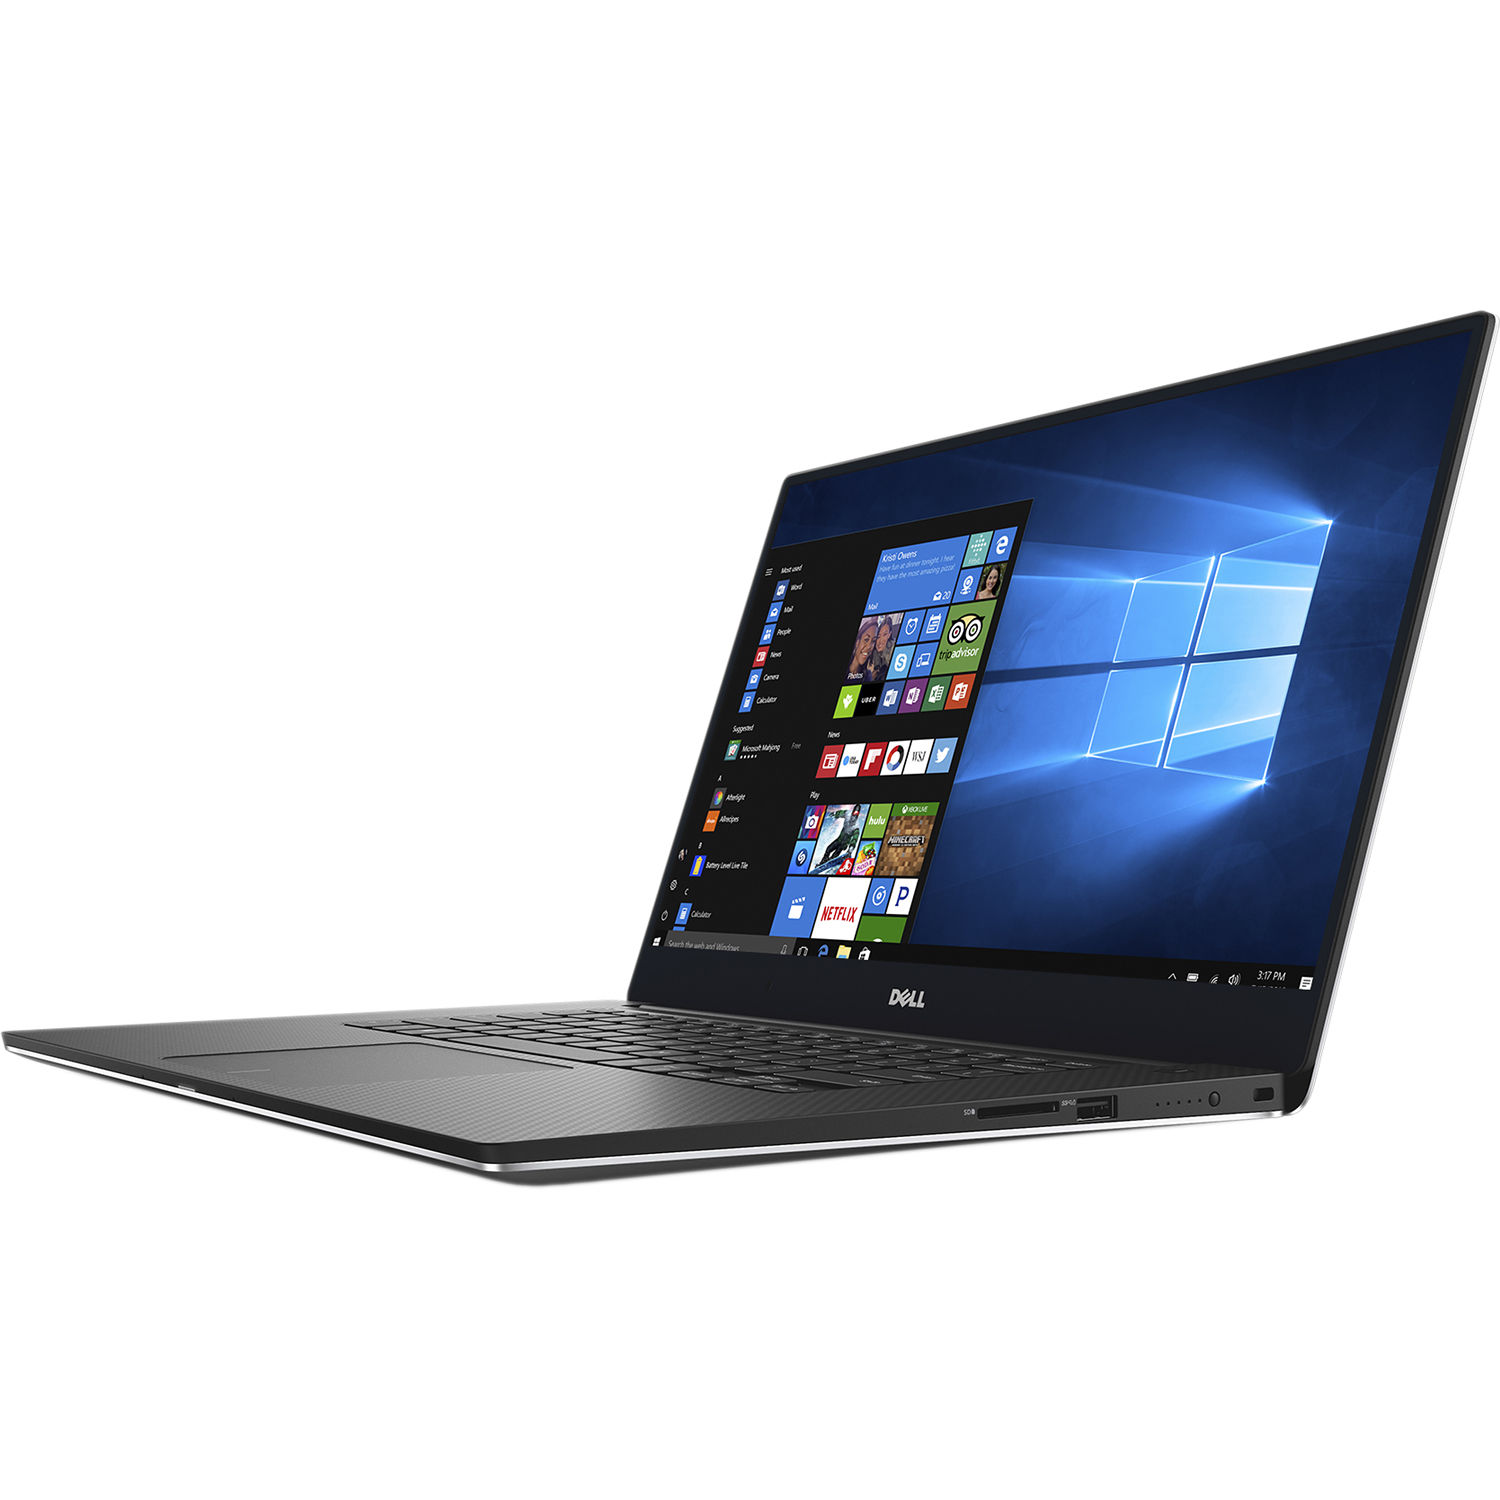 Dell XPS 15 Multi-Touch